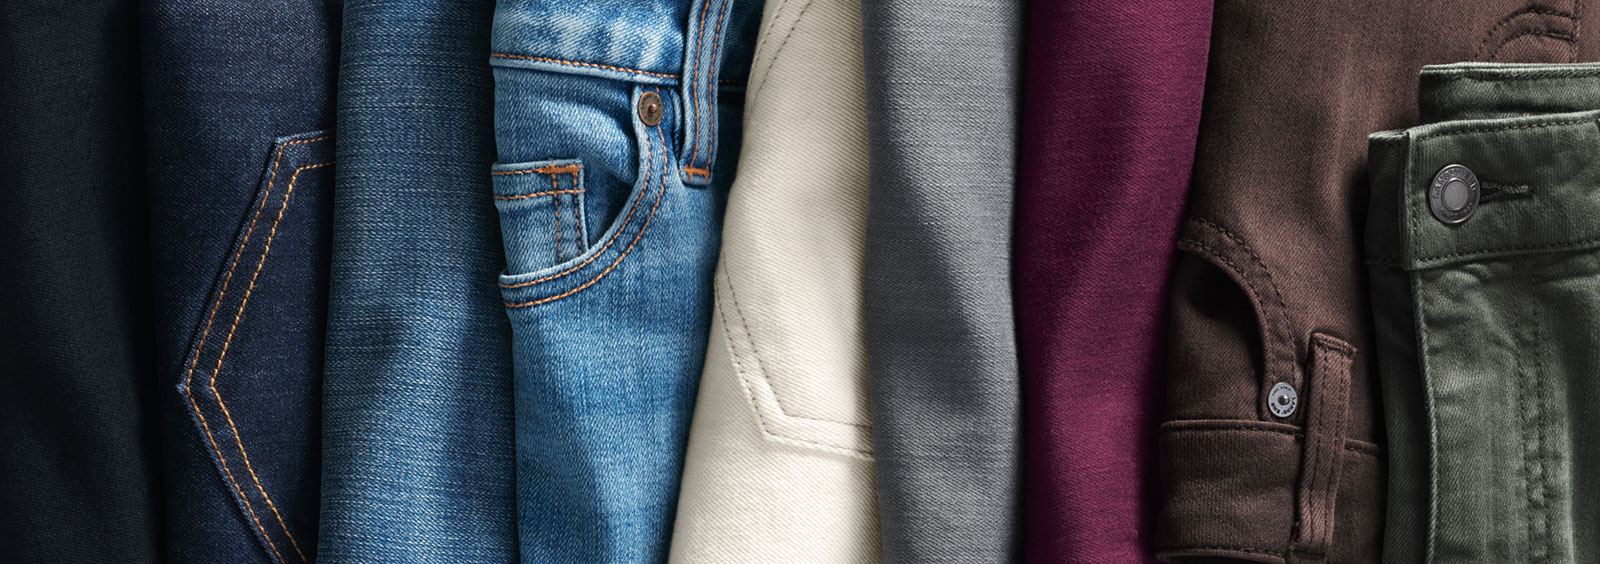 How to Tell When Jeans Just Don't Fit